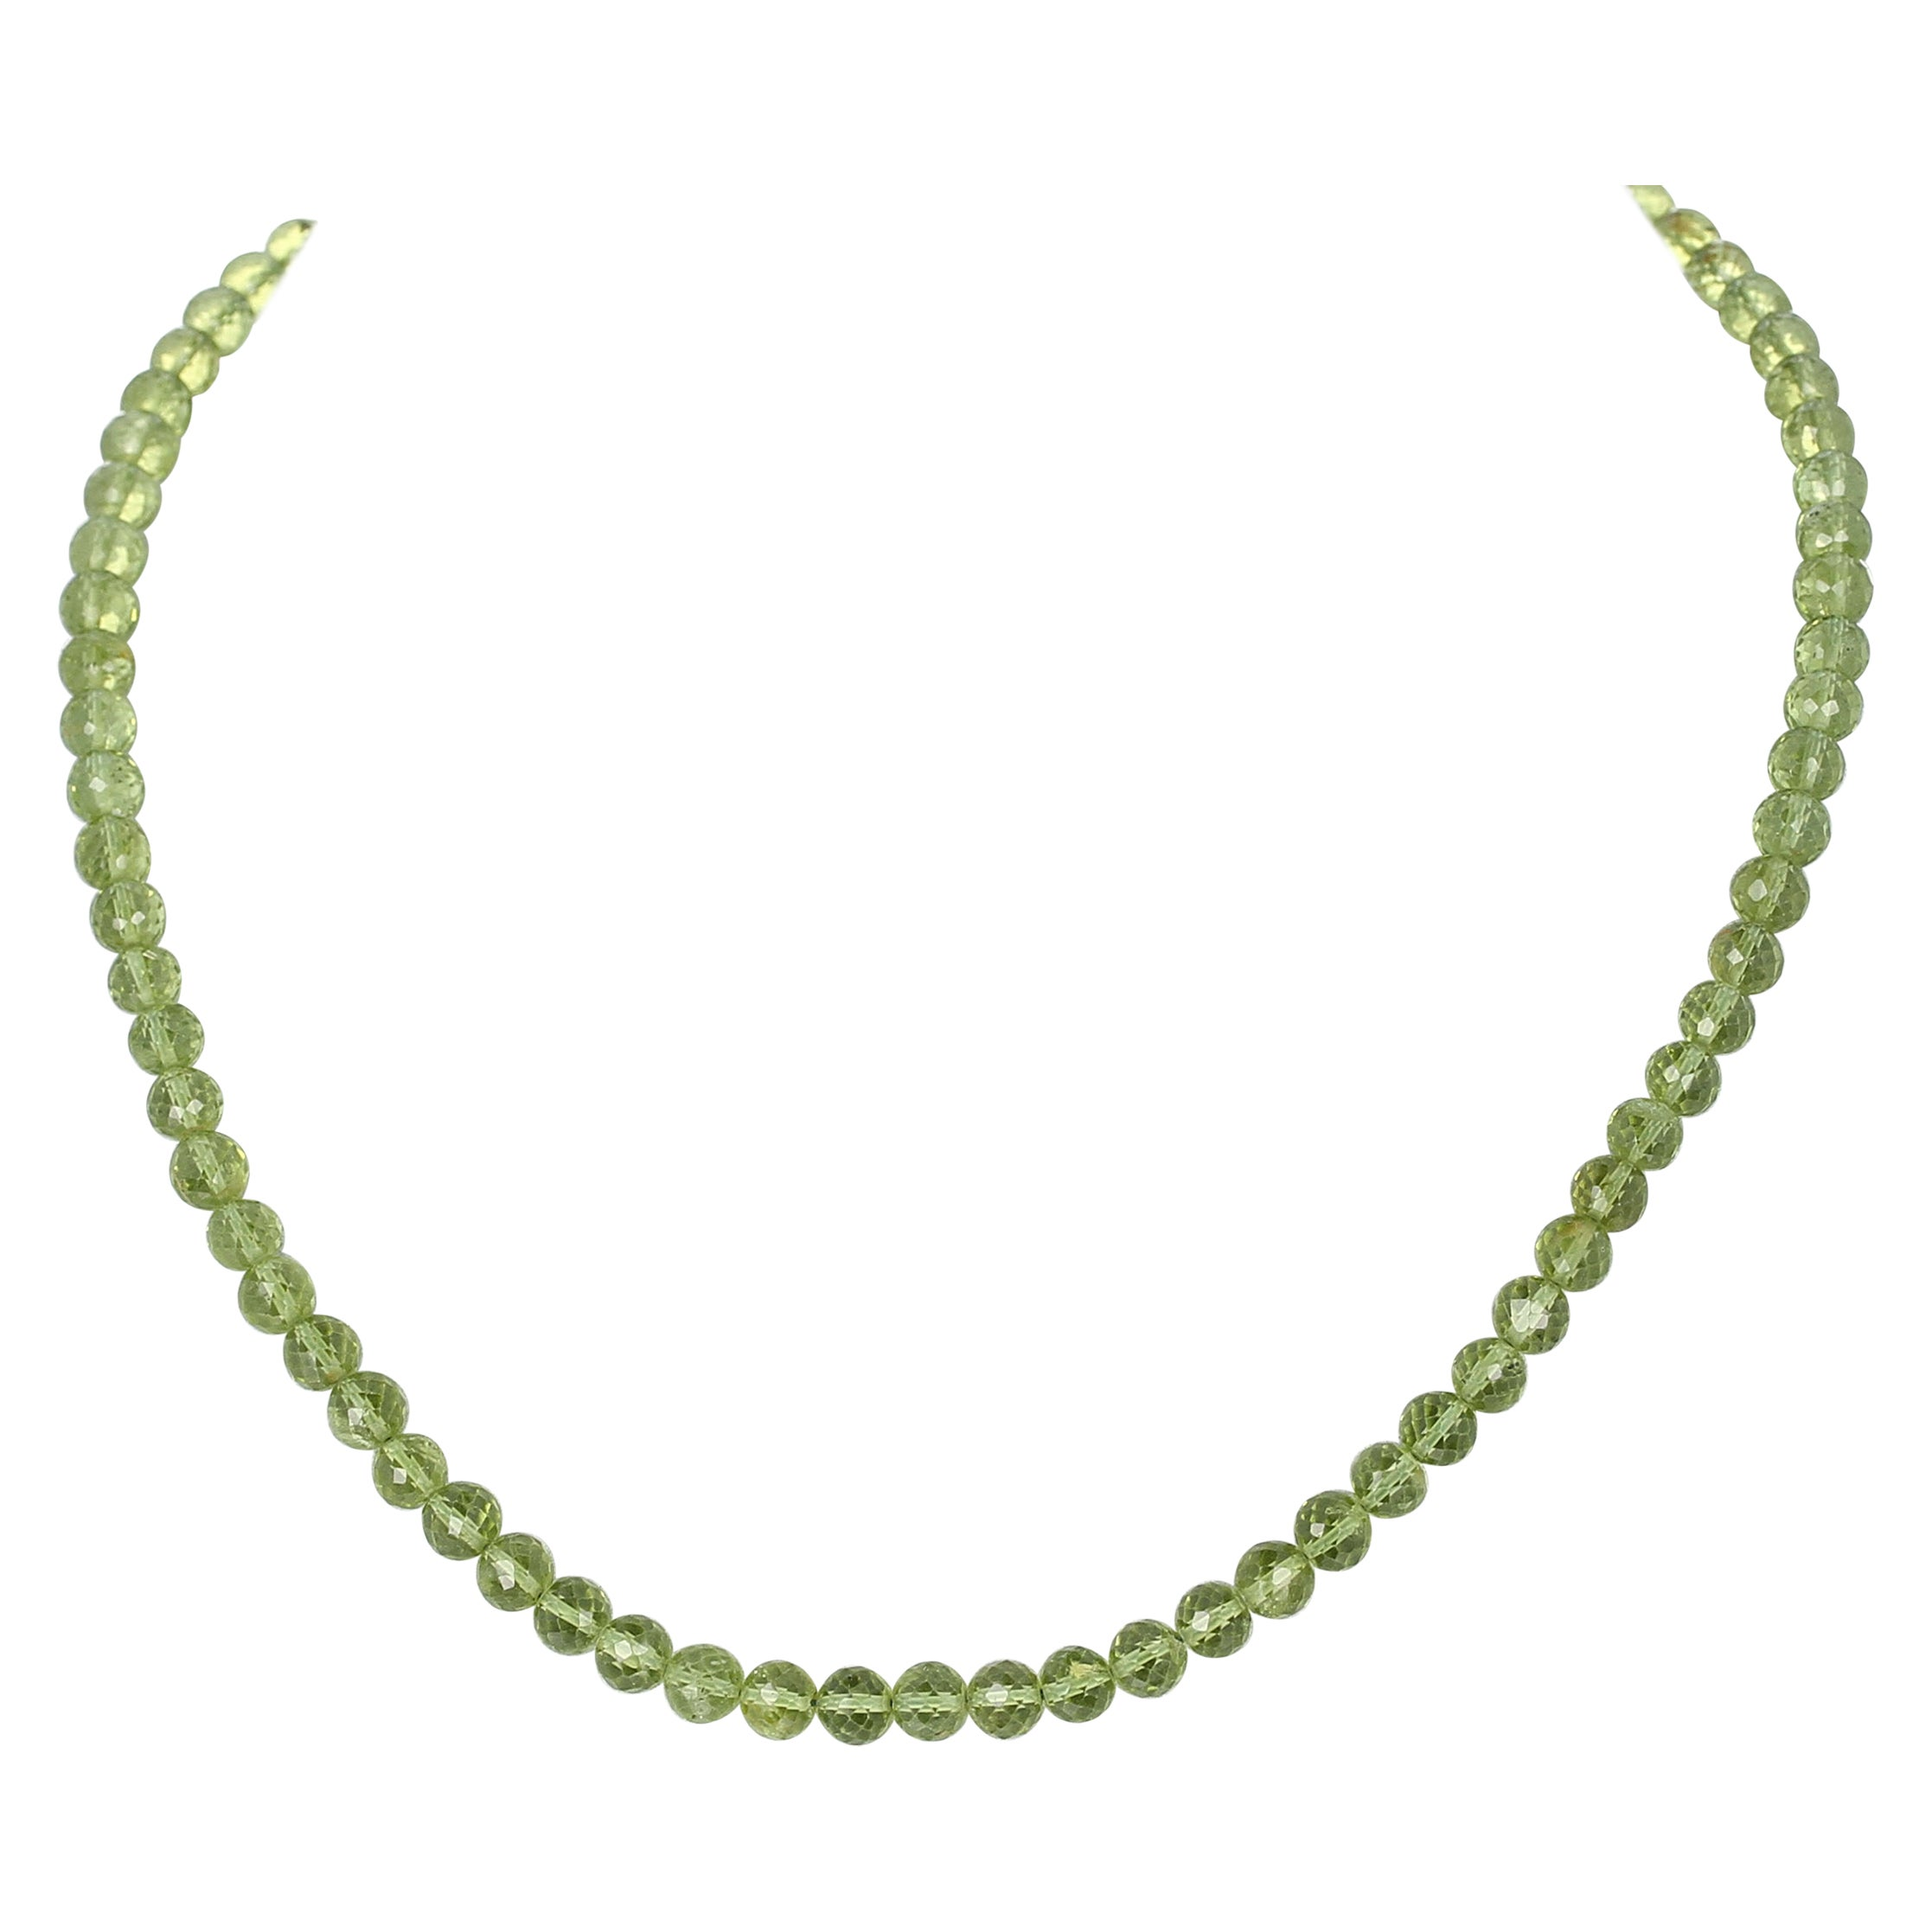 Peridot Faceted Round Beads Necklace, Toggle Clasp